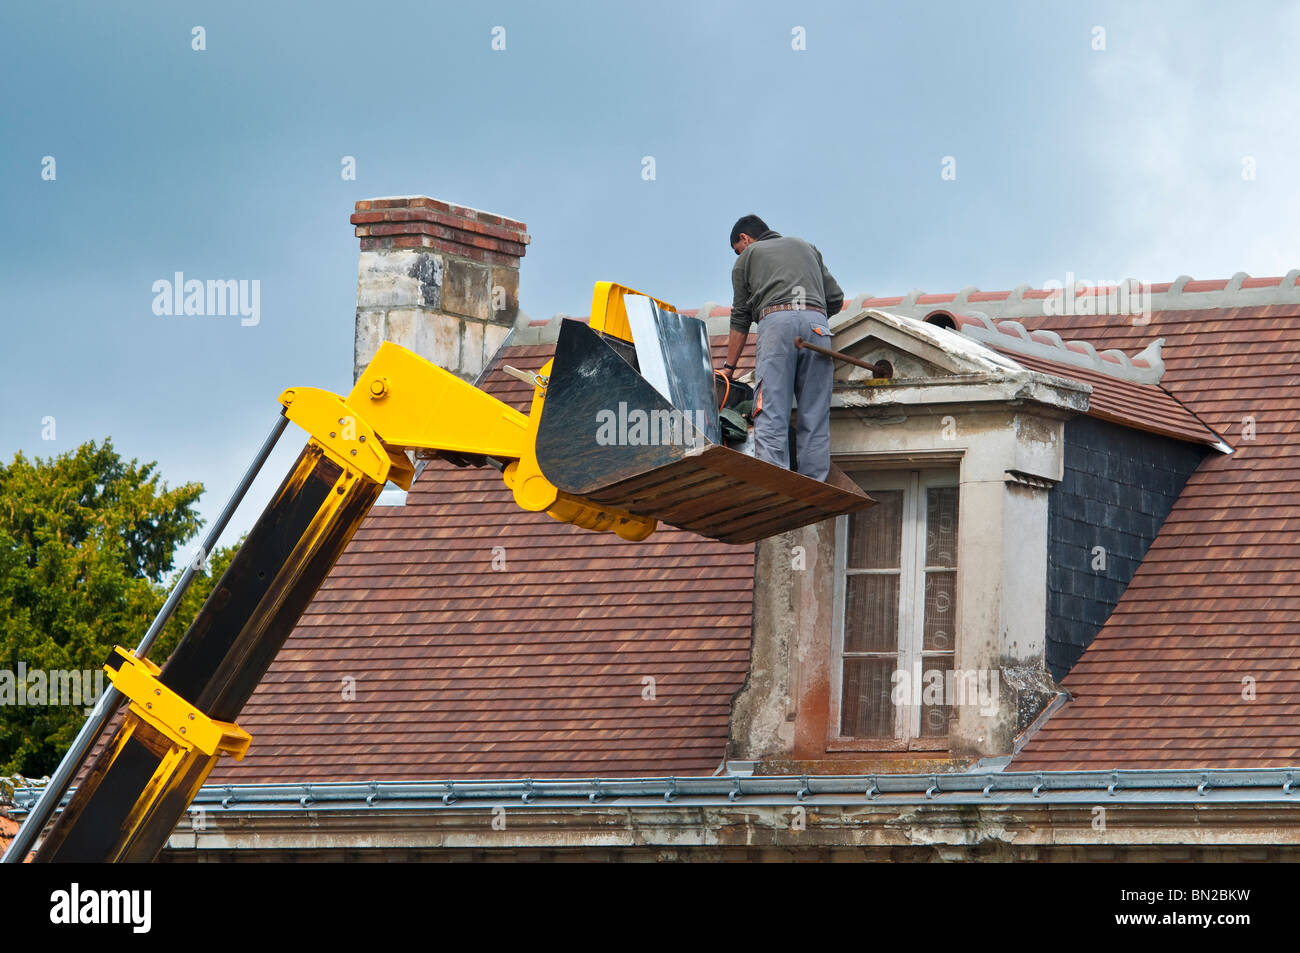 Contractor Repairing Attic Dormer Roof / No Safety Equipment Or Helmet    France.